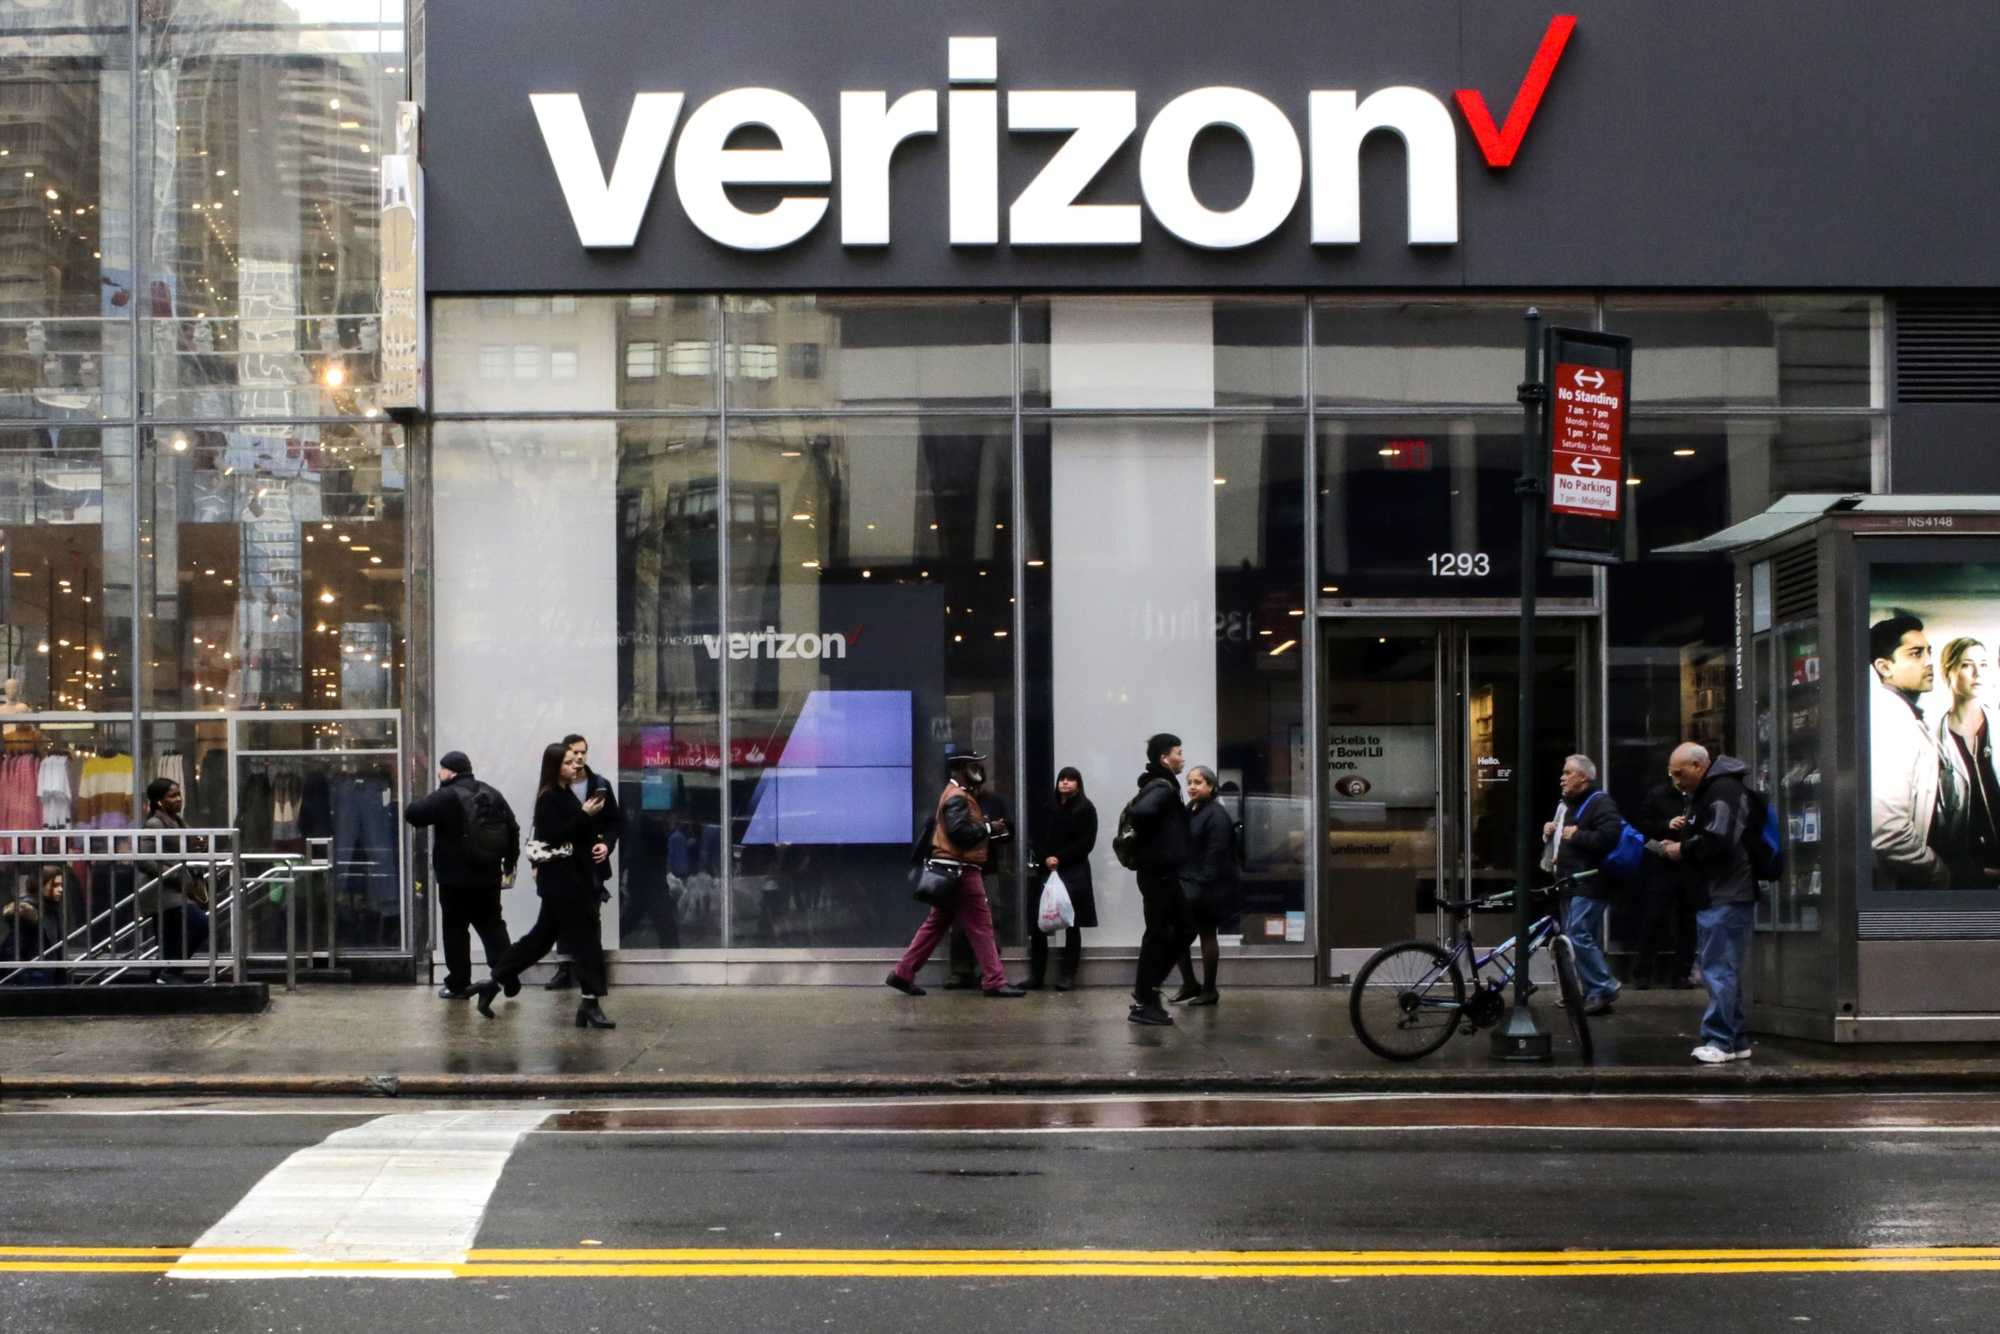 Best Prepaid Cell Phone Plans 2020.The Best Verizon Wireless Plans For 2019 Unlimited Prepaid